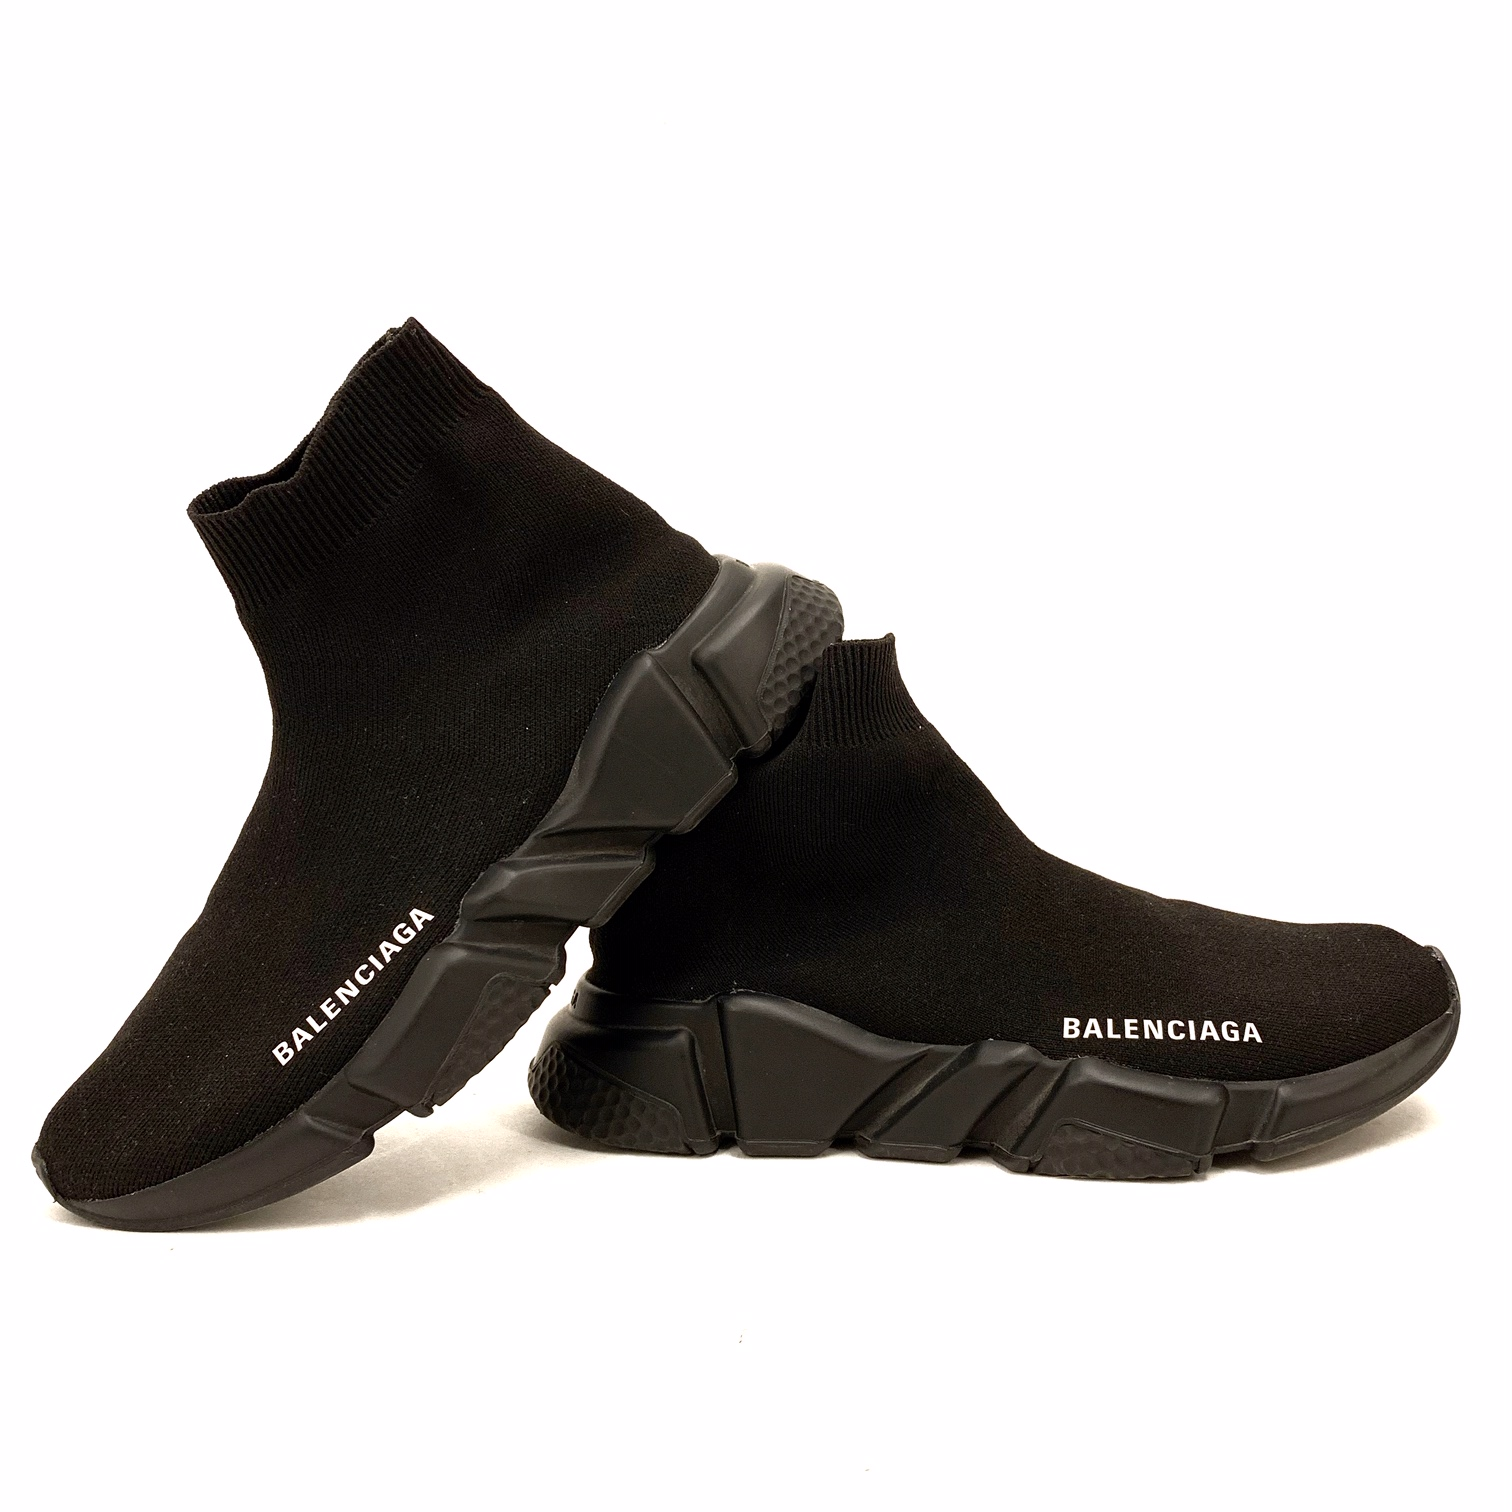 Balenciaga speed sneakers 38 Sv5497